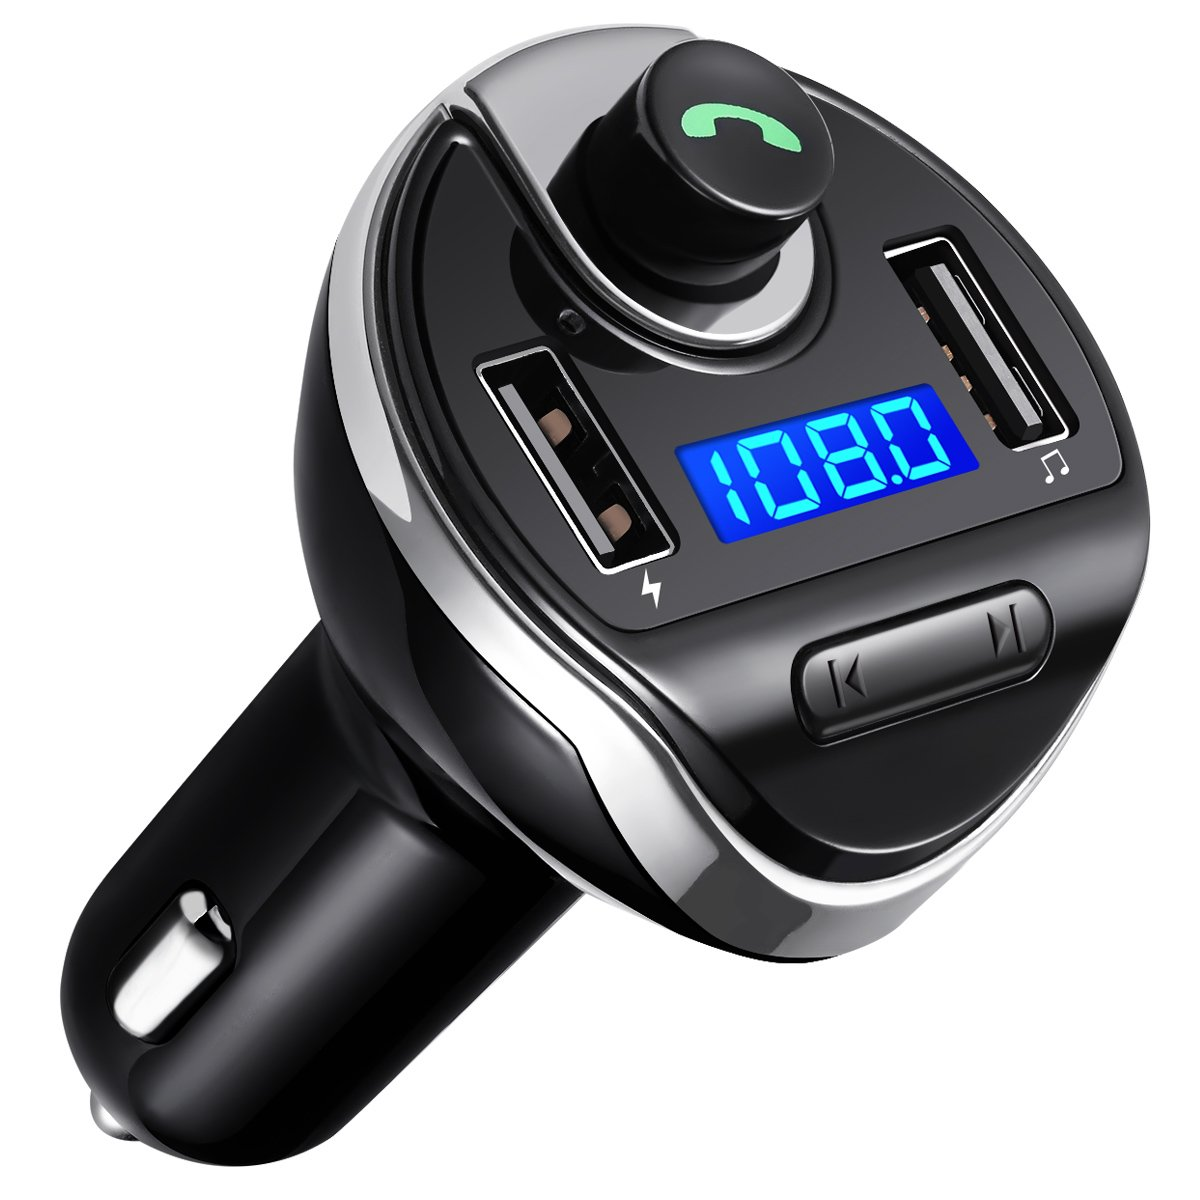 Criacr Bluetooth FM Transmitter, Universal Car Charger with Dual USB Charging Ports, Wireless in-Car FM Transmitter Radio Adapter Car Kit, Hands Free Calling for iPhone, Samsung, etc